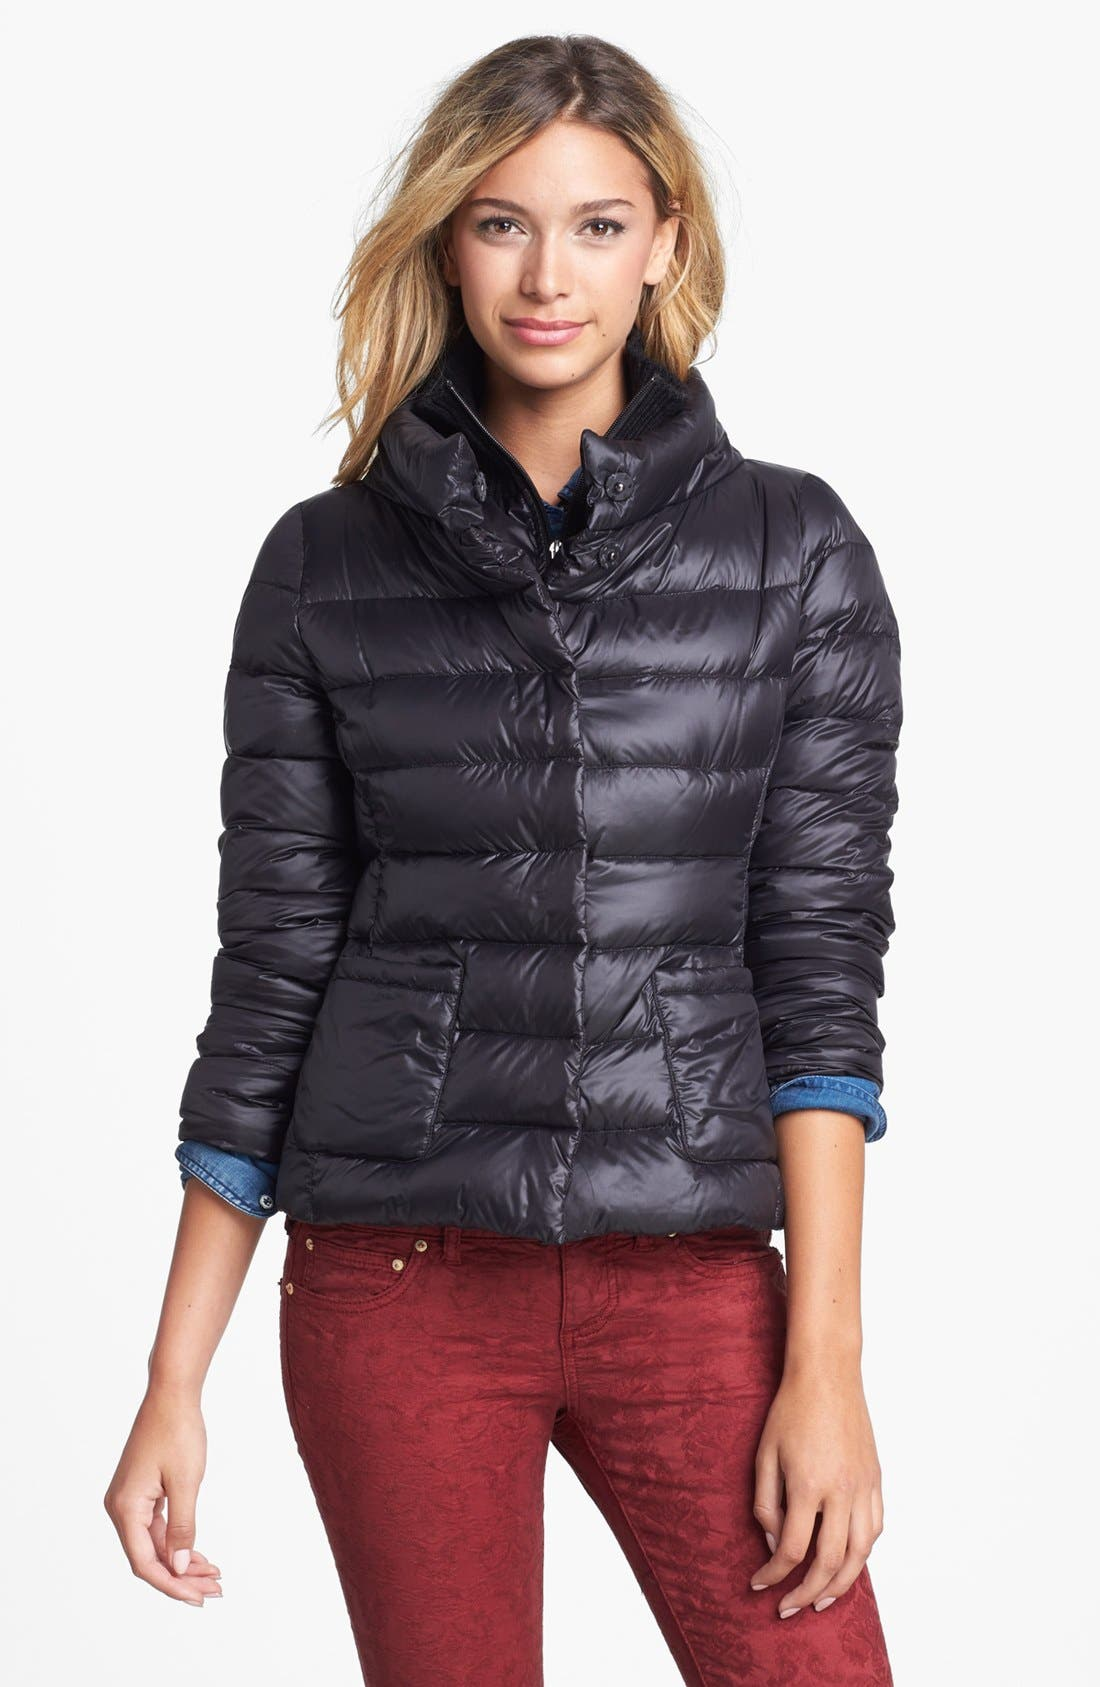 Alternate Image 1 Selected - T Tahari 'Sandra' Bib Front Packable Quilted Jacket